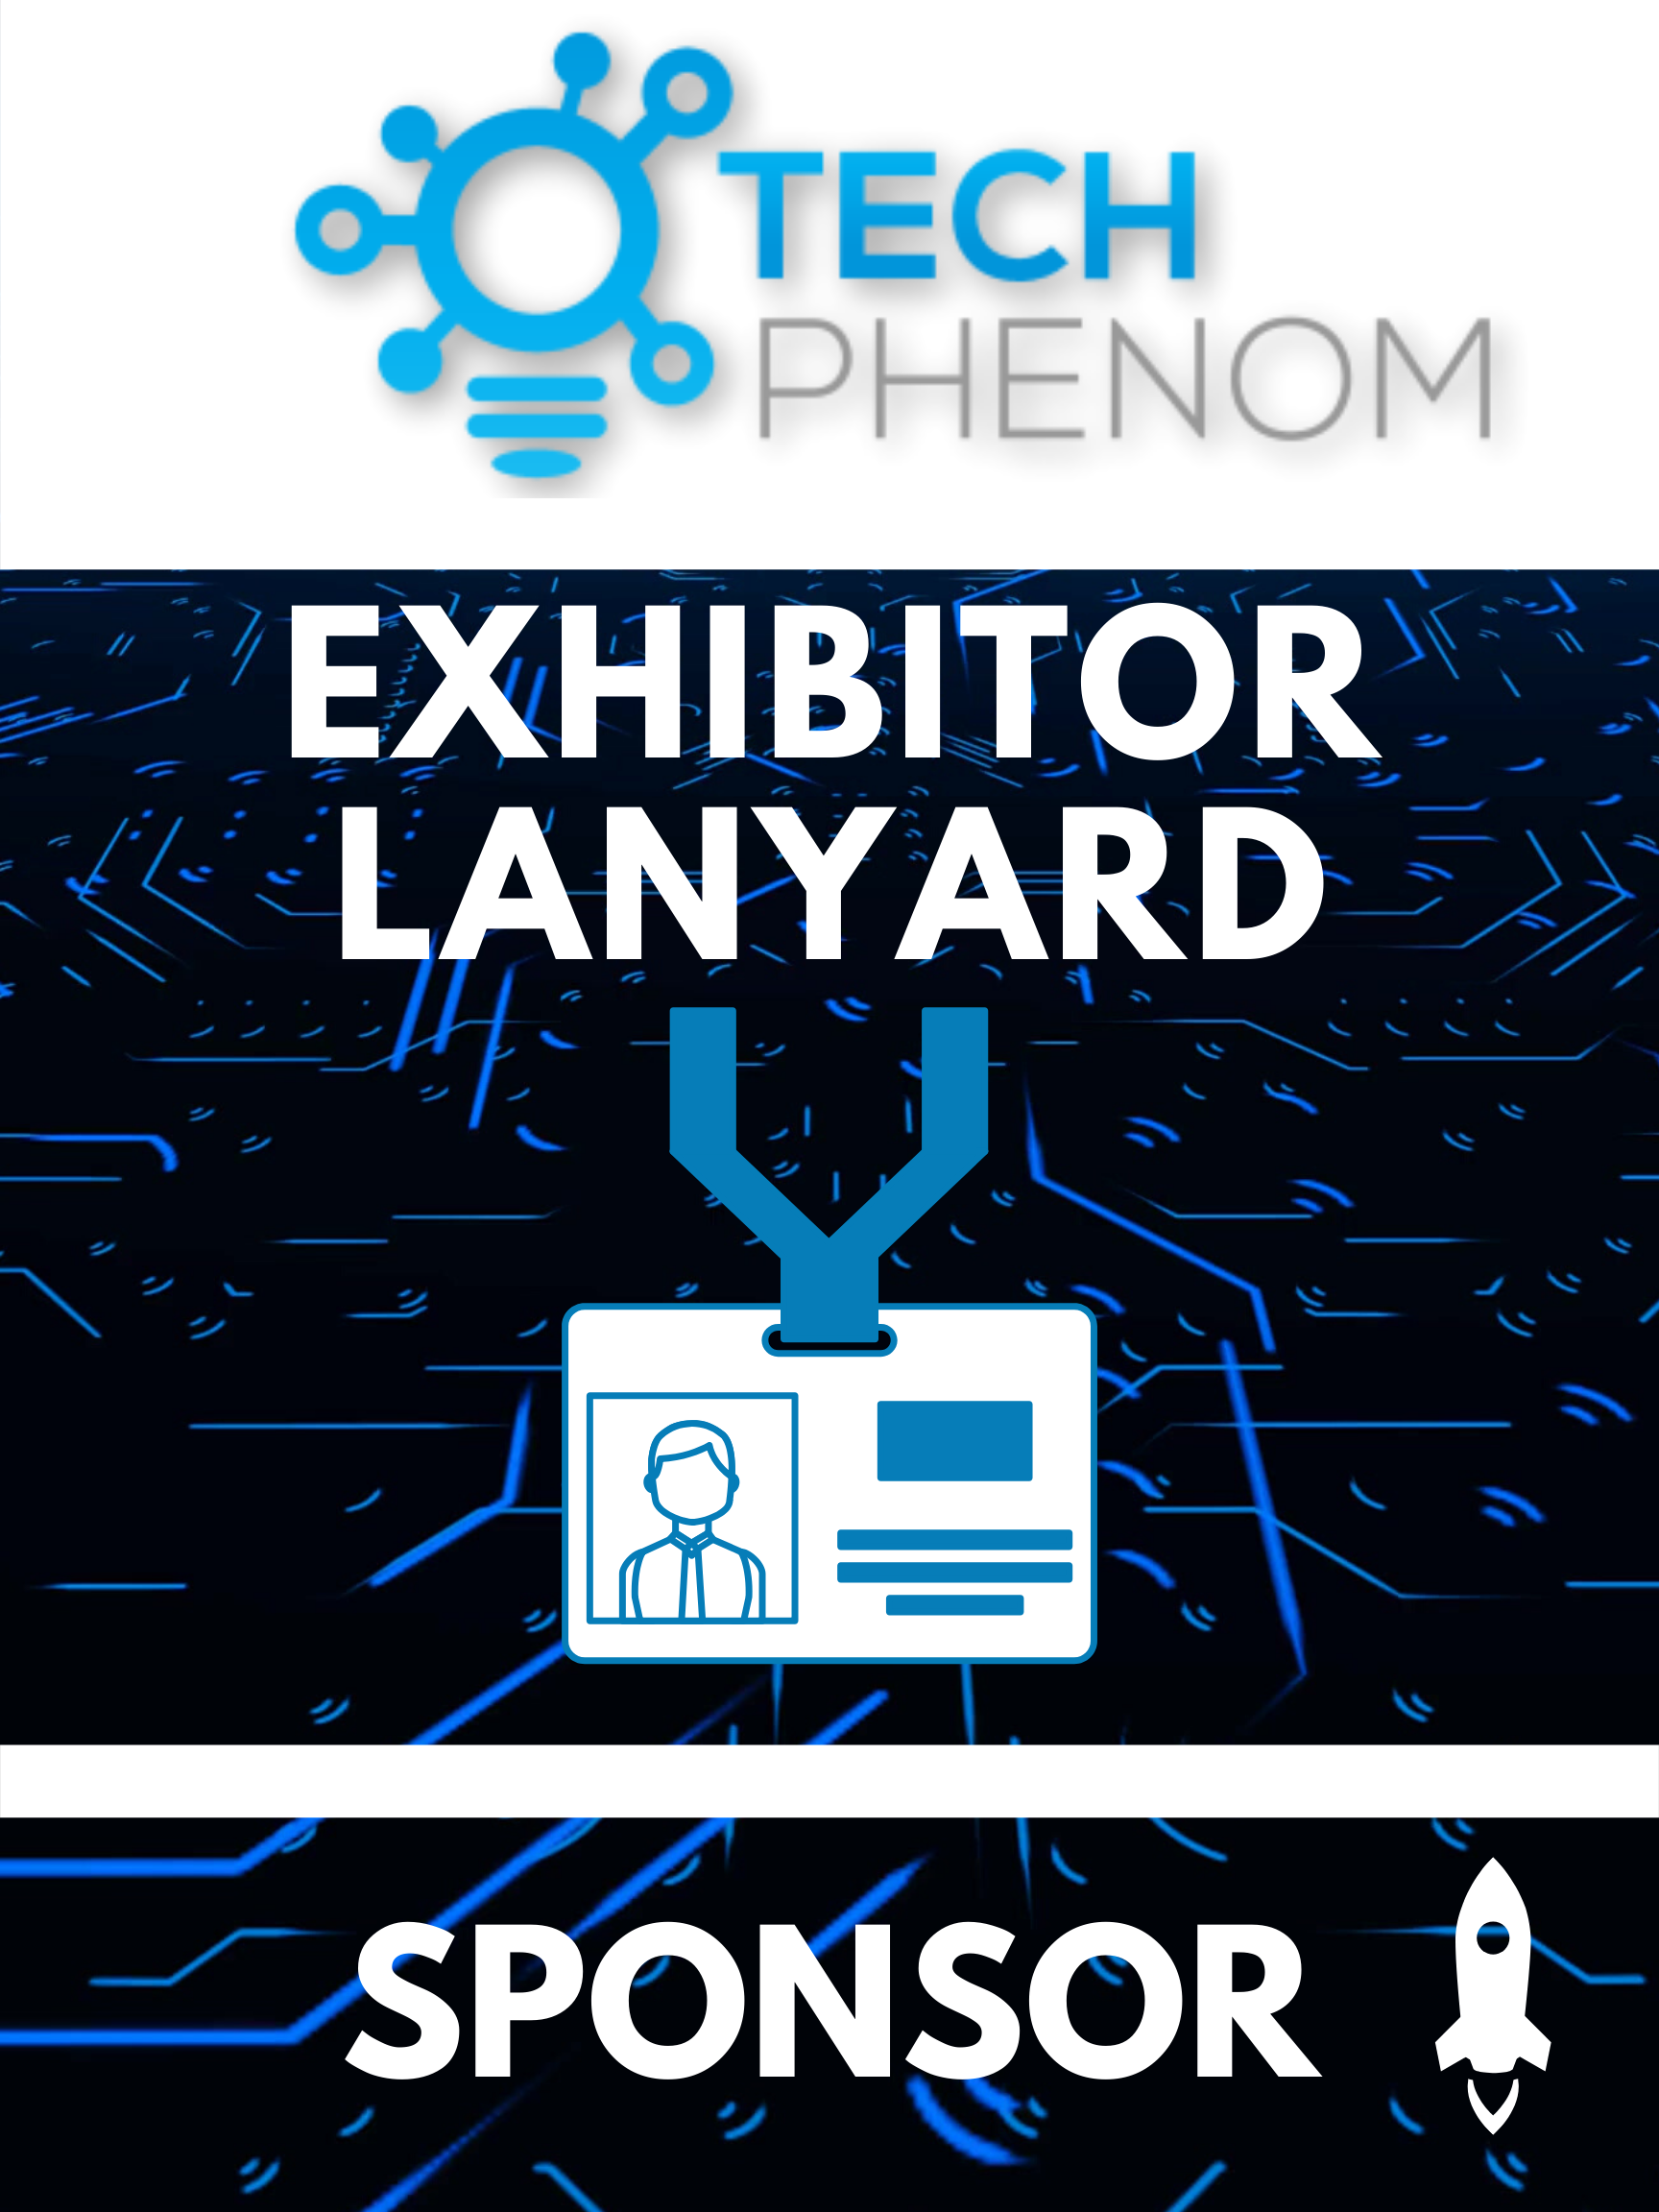 Tech Phenomenon Exhibitor Lanyard Sponsor